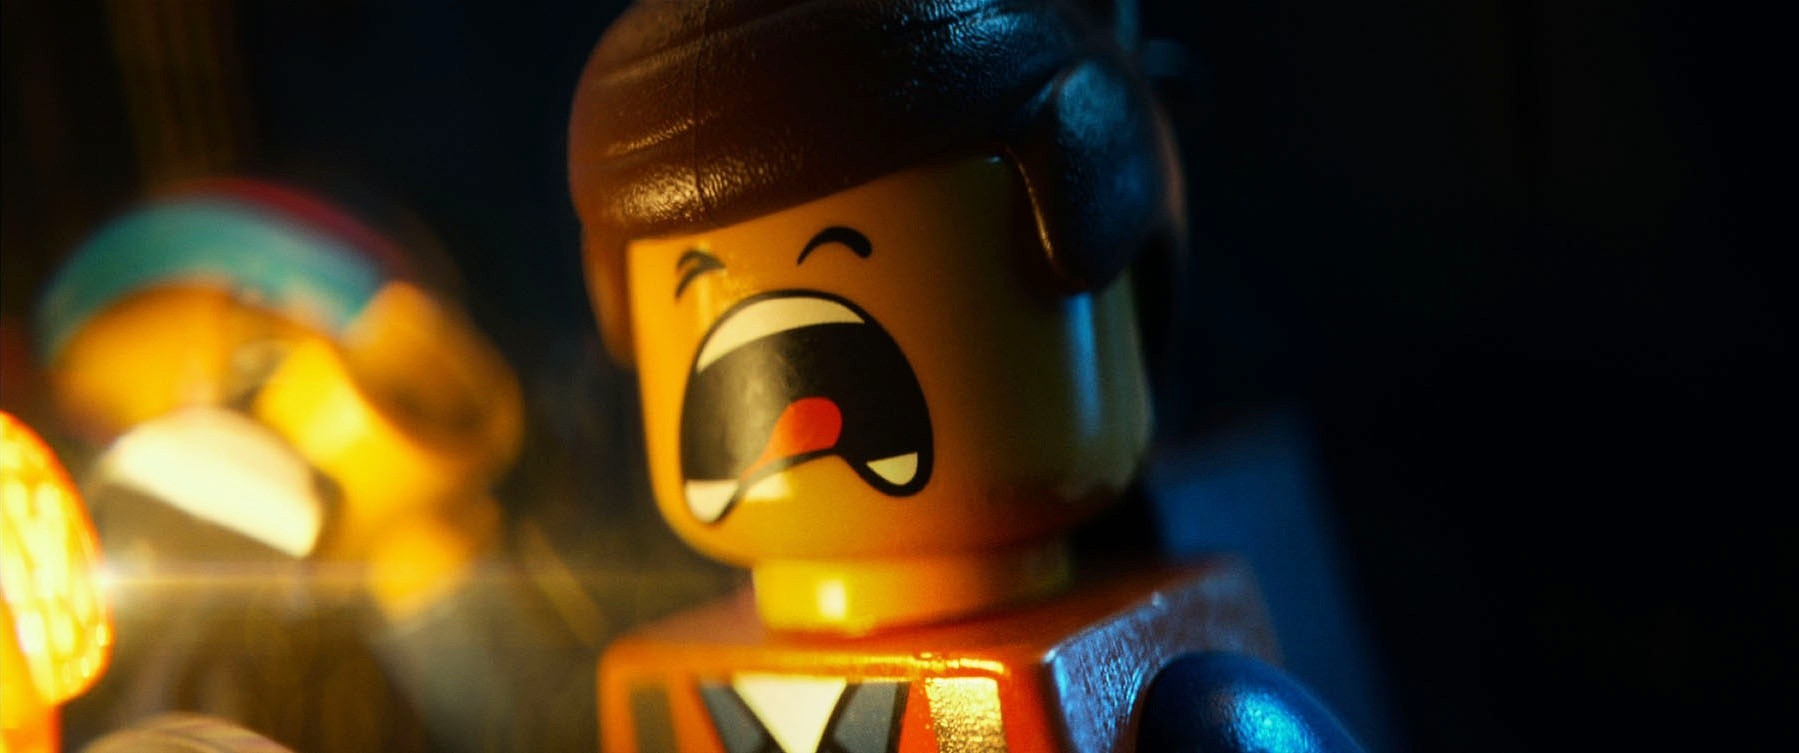 Pictures From The Lego Movie: El Space–The Blog Of L. Marie